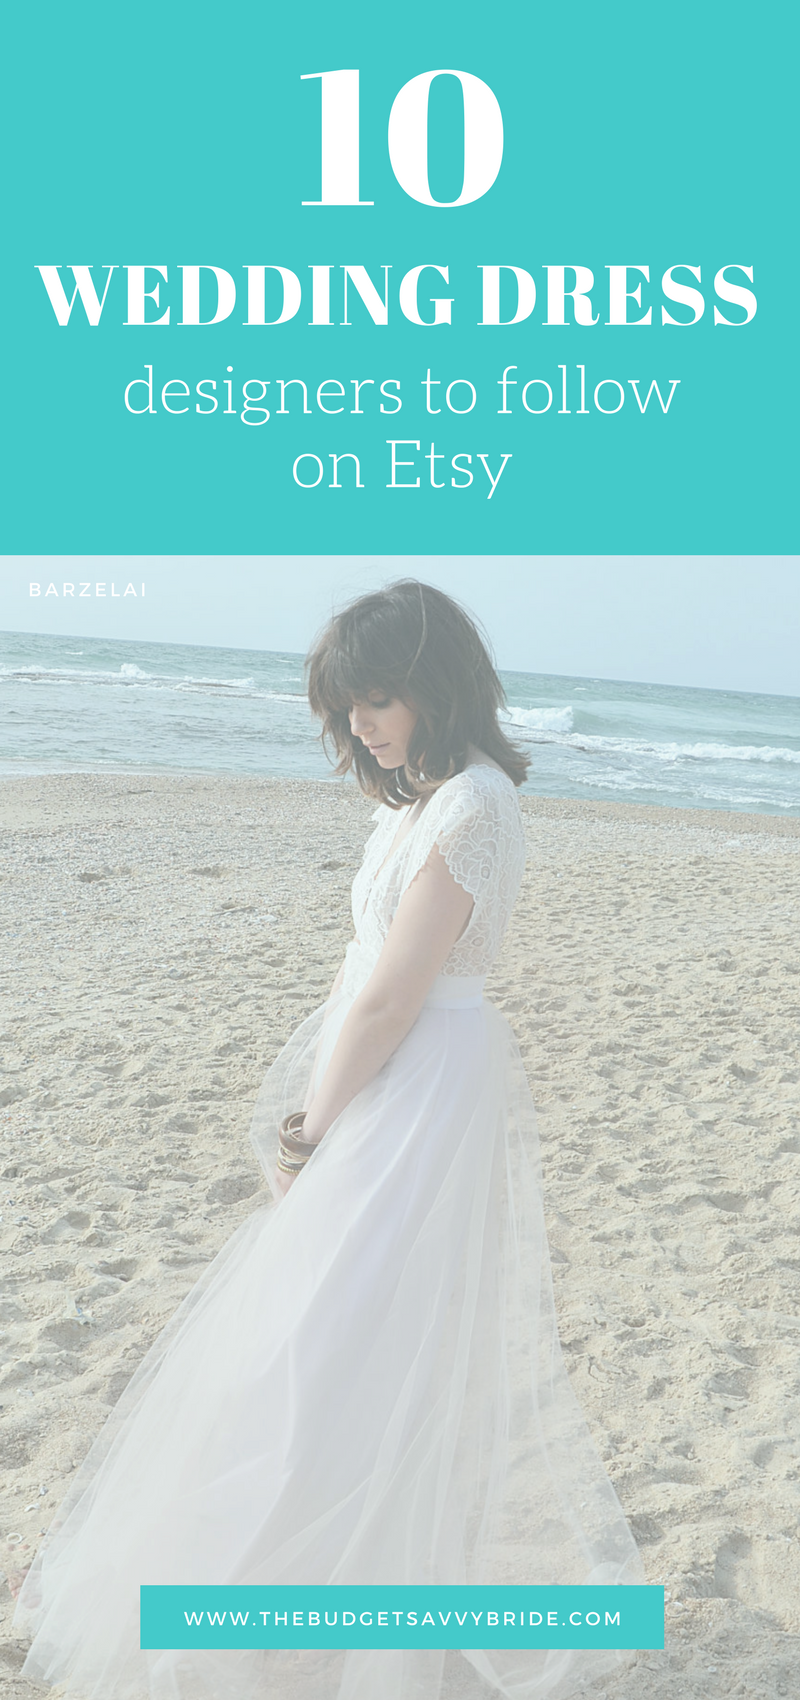 Looking for a truly unique and even handmade wedding gown? Consider the 100s of talented Etsy wedding dress designers available at the tip of your fingers.